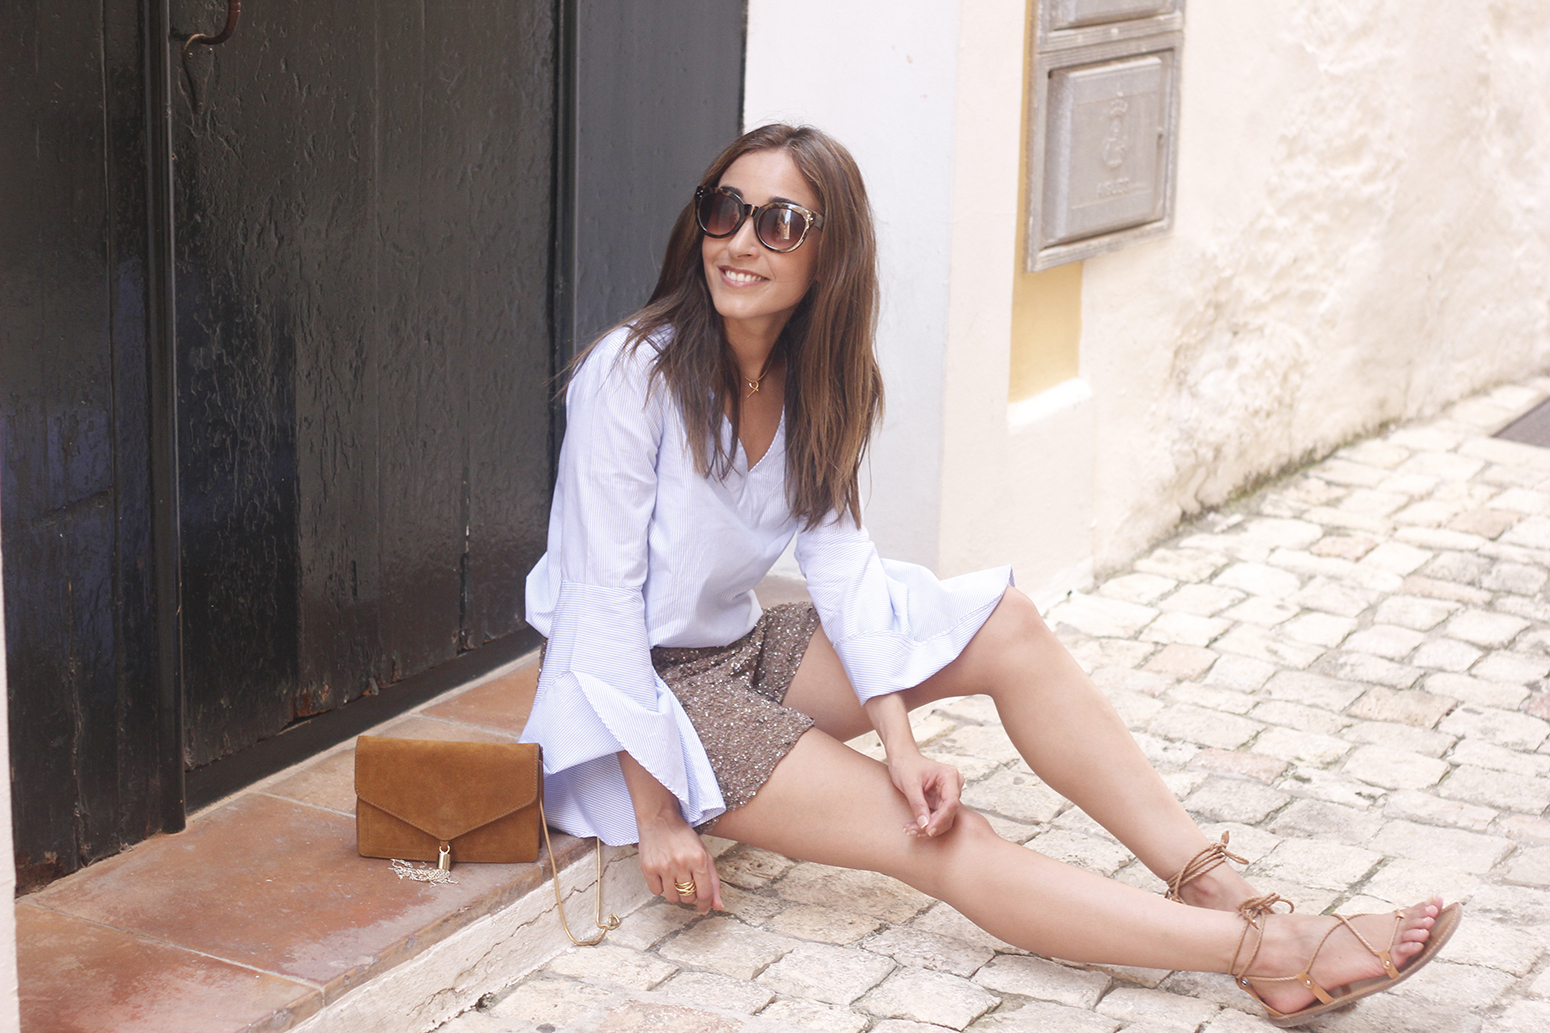 sequined shorts bell sleeves striped shirt summer flat sandals summer fashion outfit08